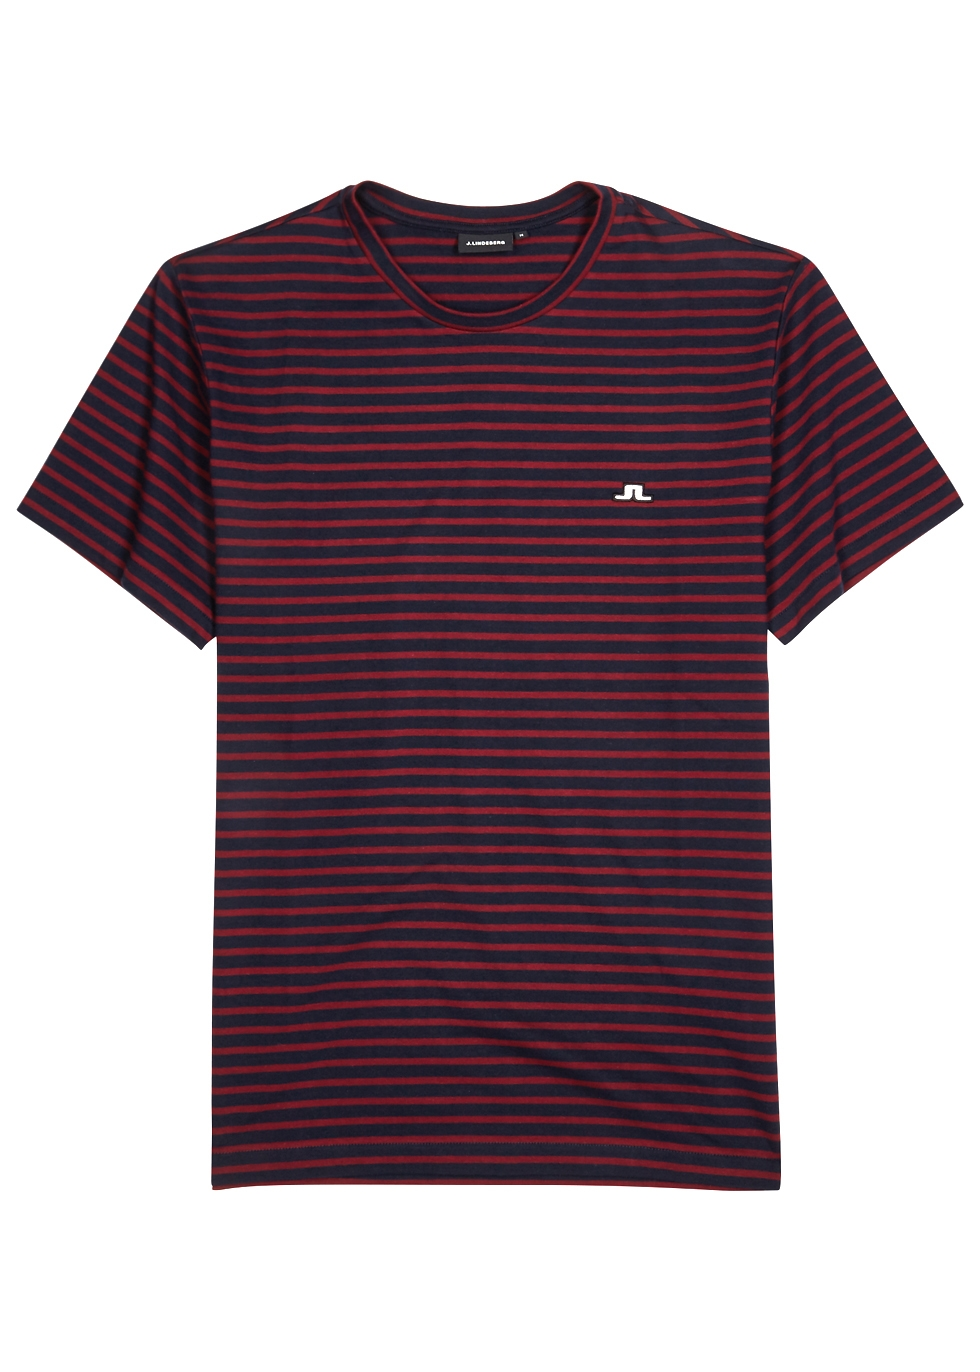 J.LINDEBERG CHARLES STRIPED COTTON T-SHIRT